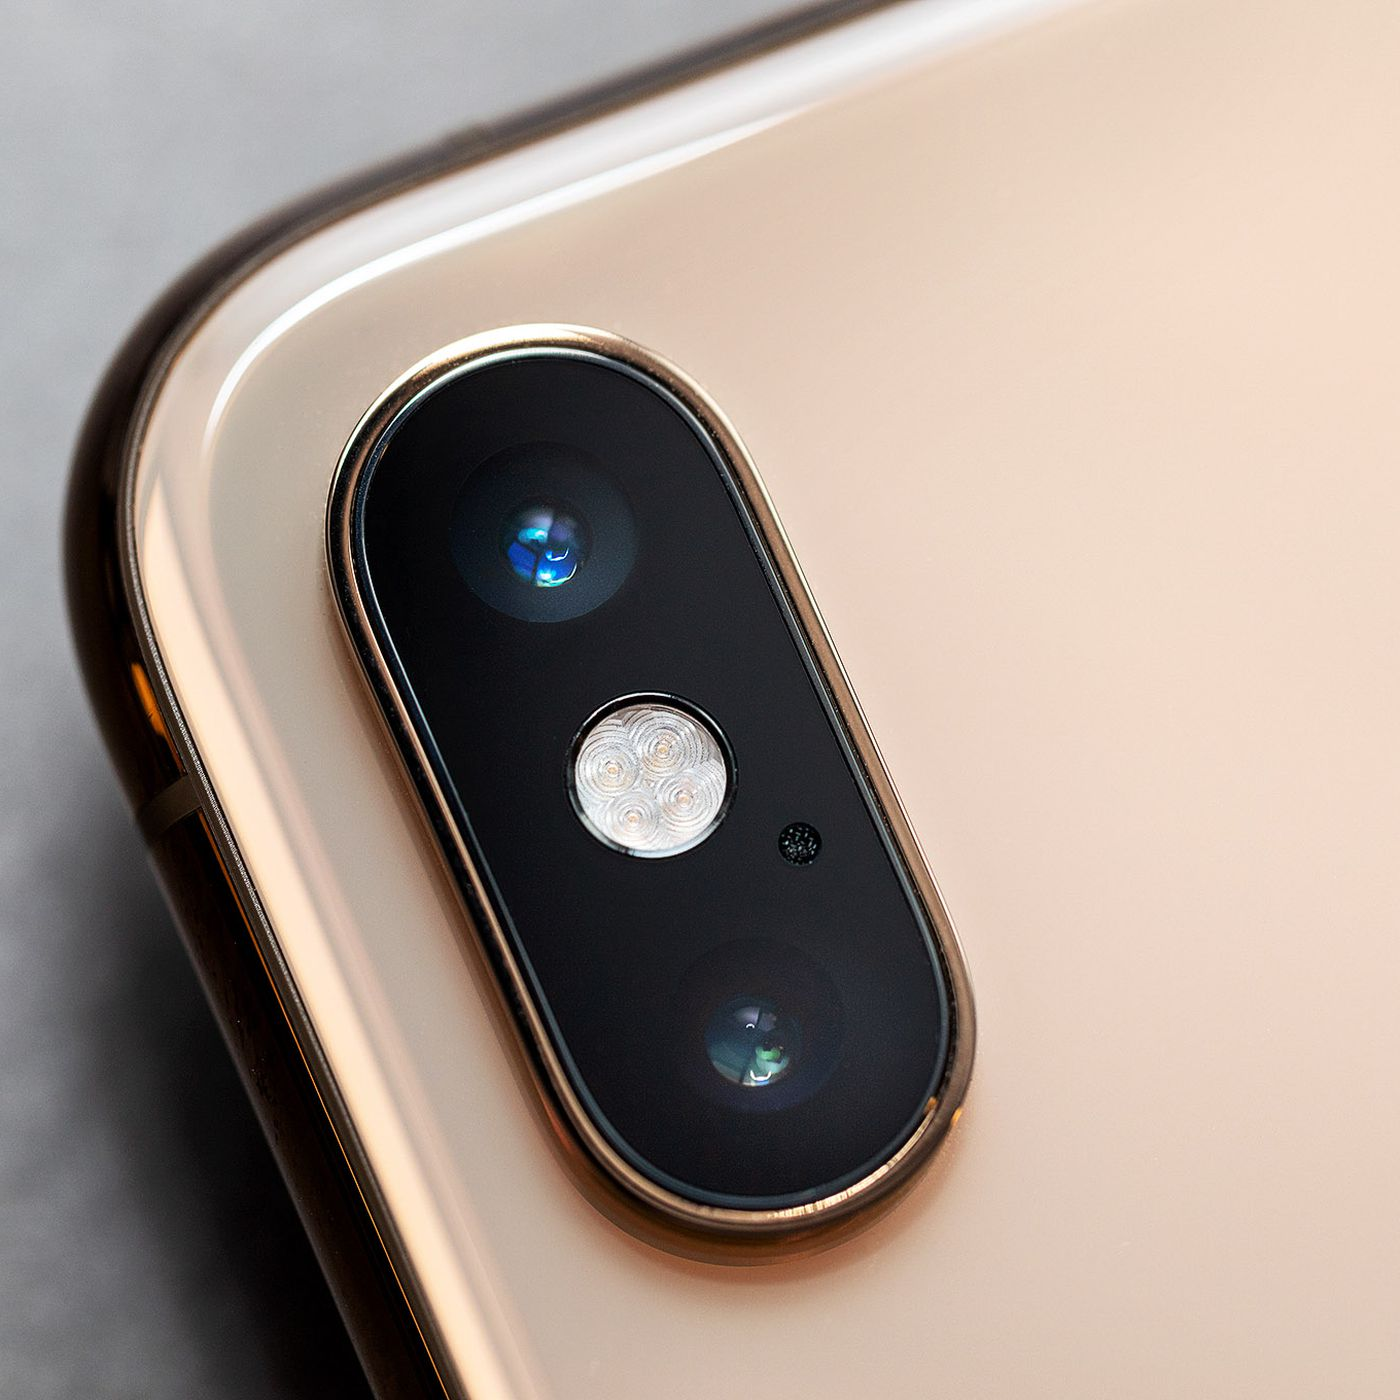 theverge.com - Vlad Savov - The iPhone XS camera beats the iPhone X, but not the Pixel 2